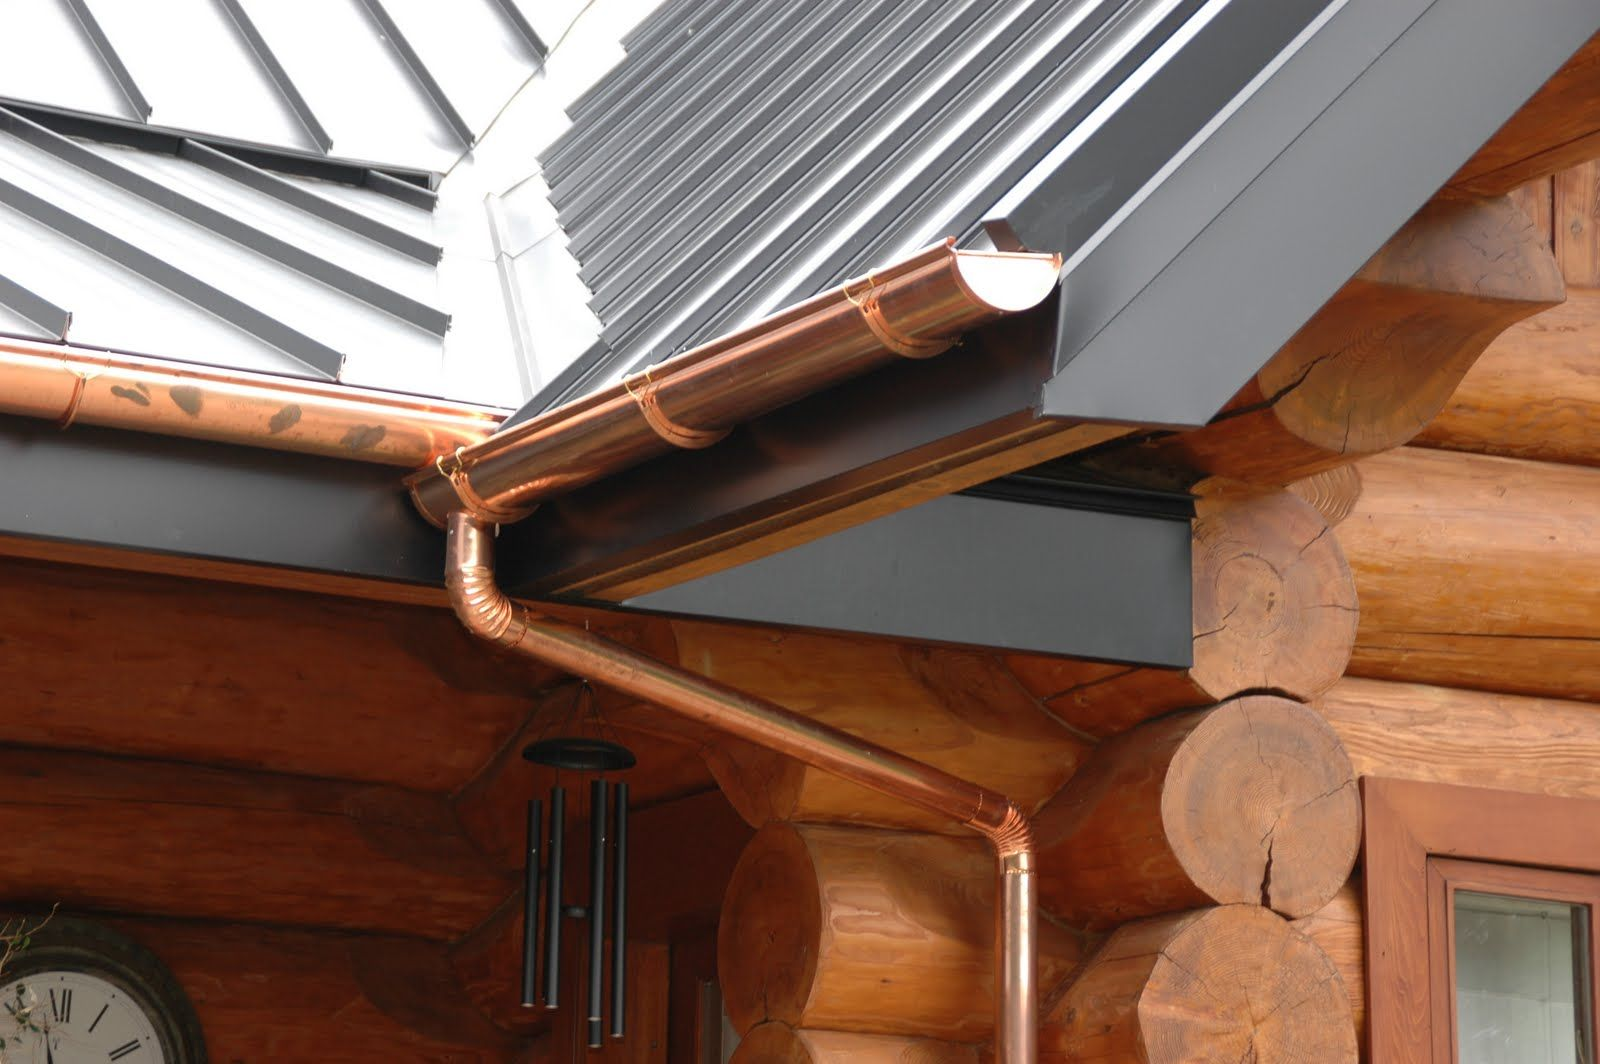 Copper Roof Sterling Roof And Copper Gutters True Gems